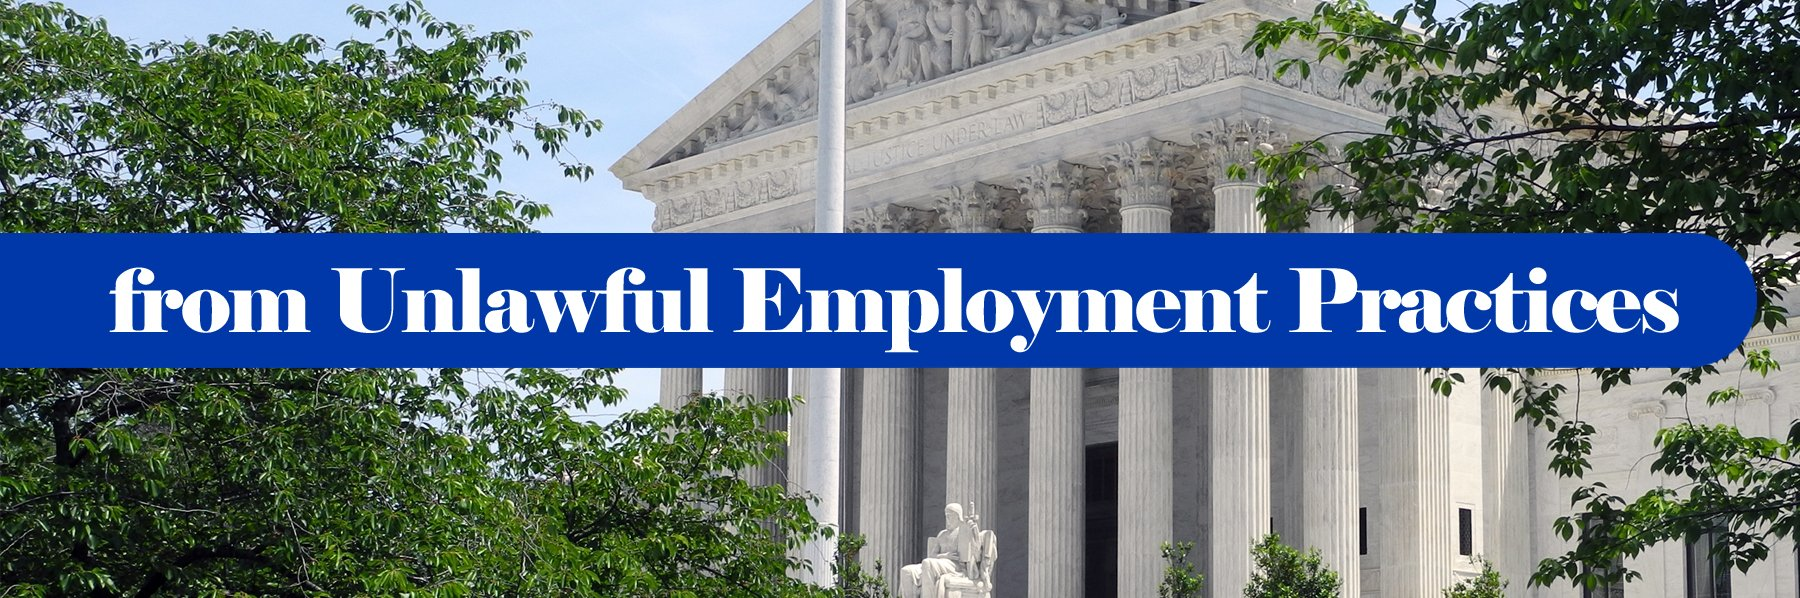 From Unlawful Employment Practices